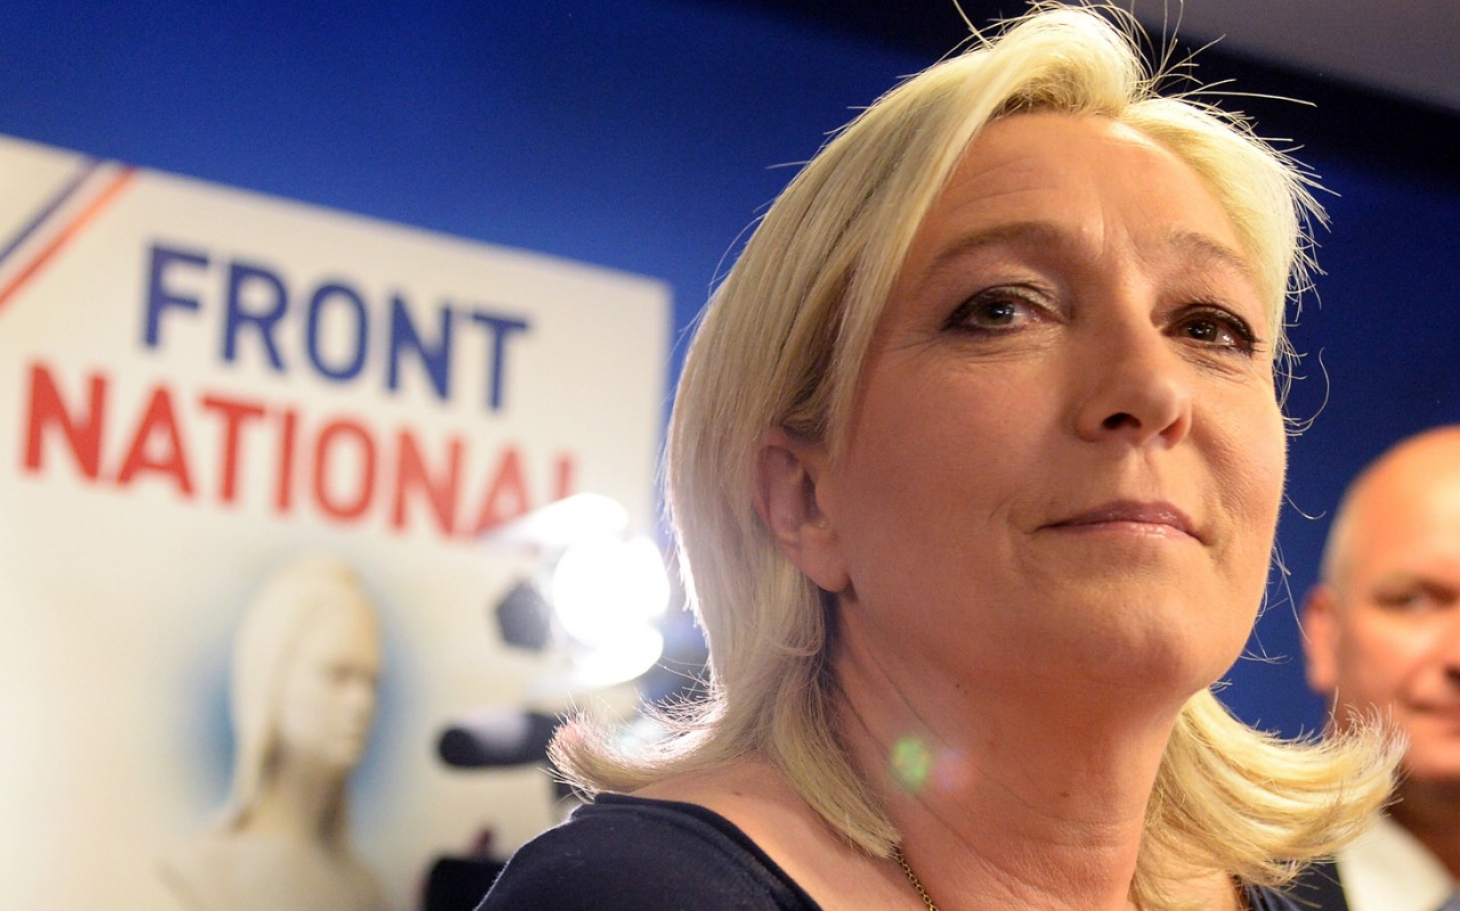 Image result for Marie le pen